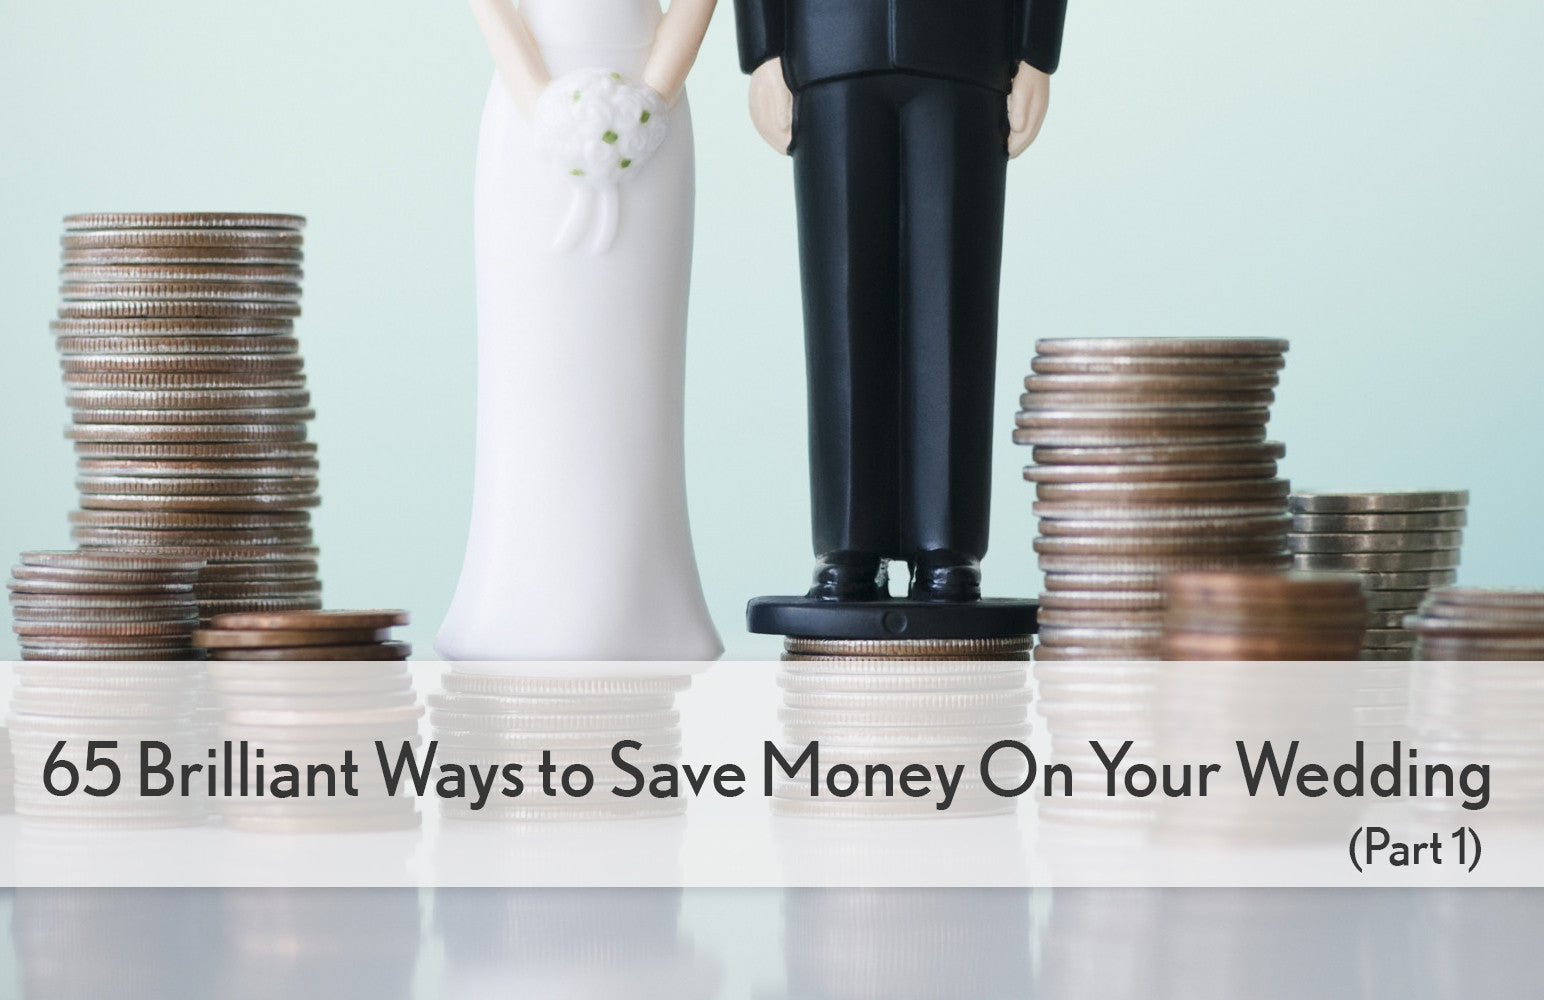 65 Brilliant and Ingenious Ways to Save Money and Cut Wedding Costs